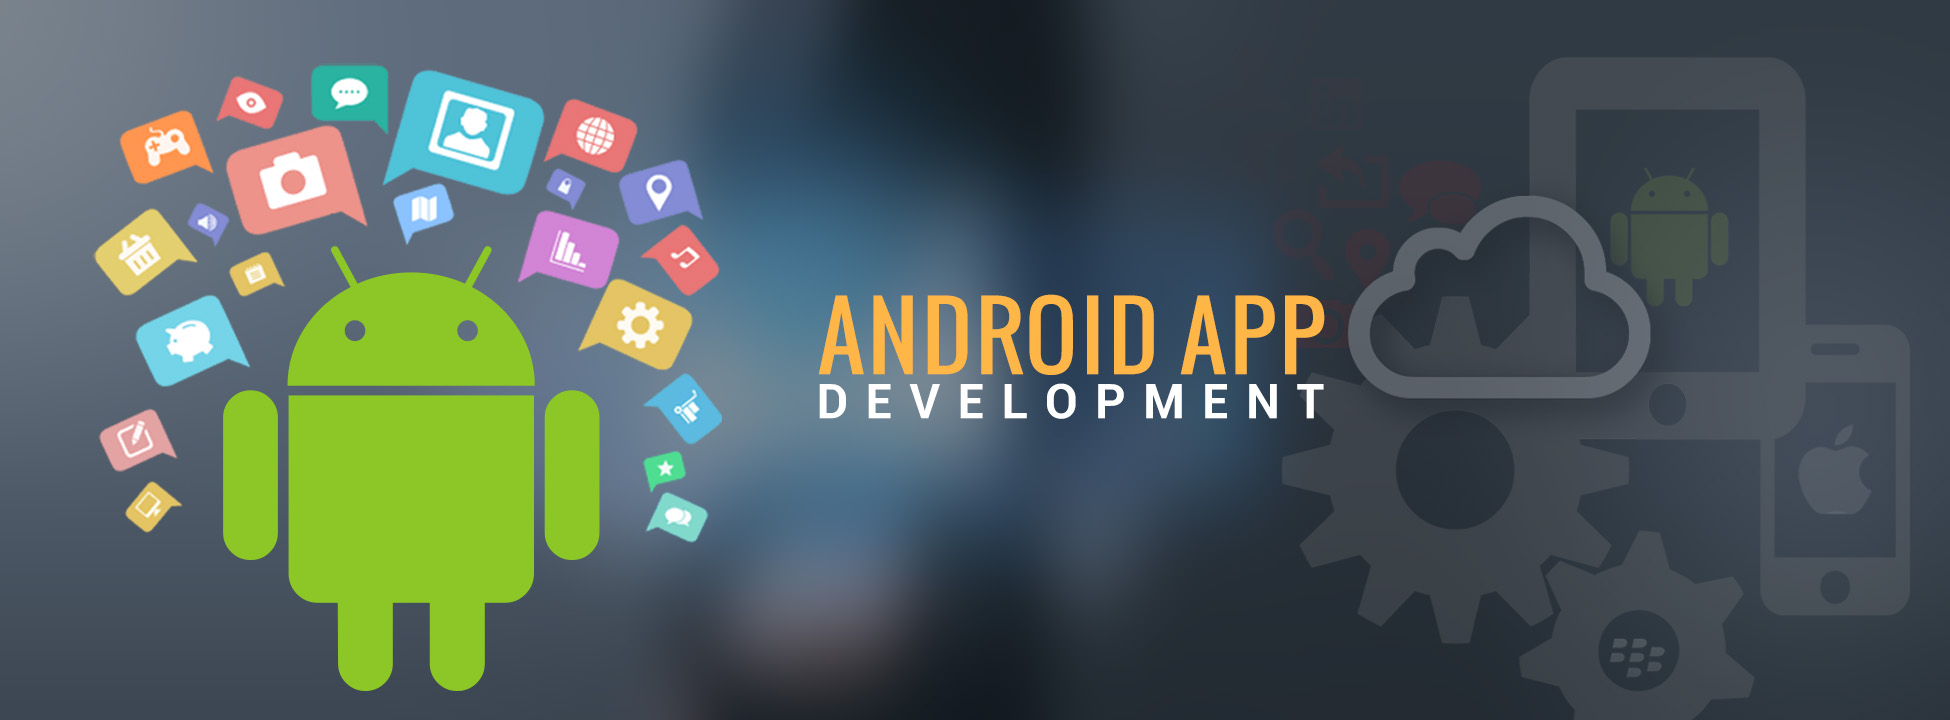 Learning Android App Development